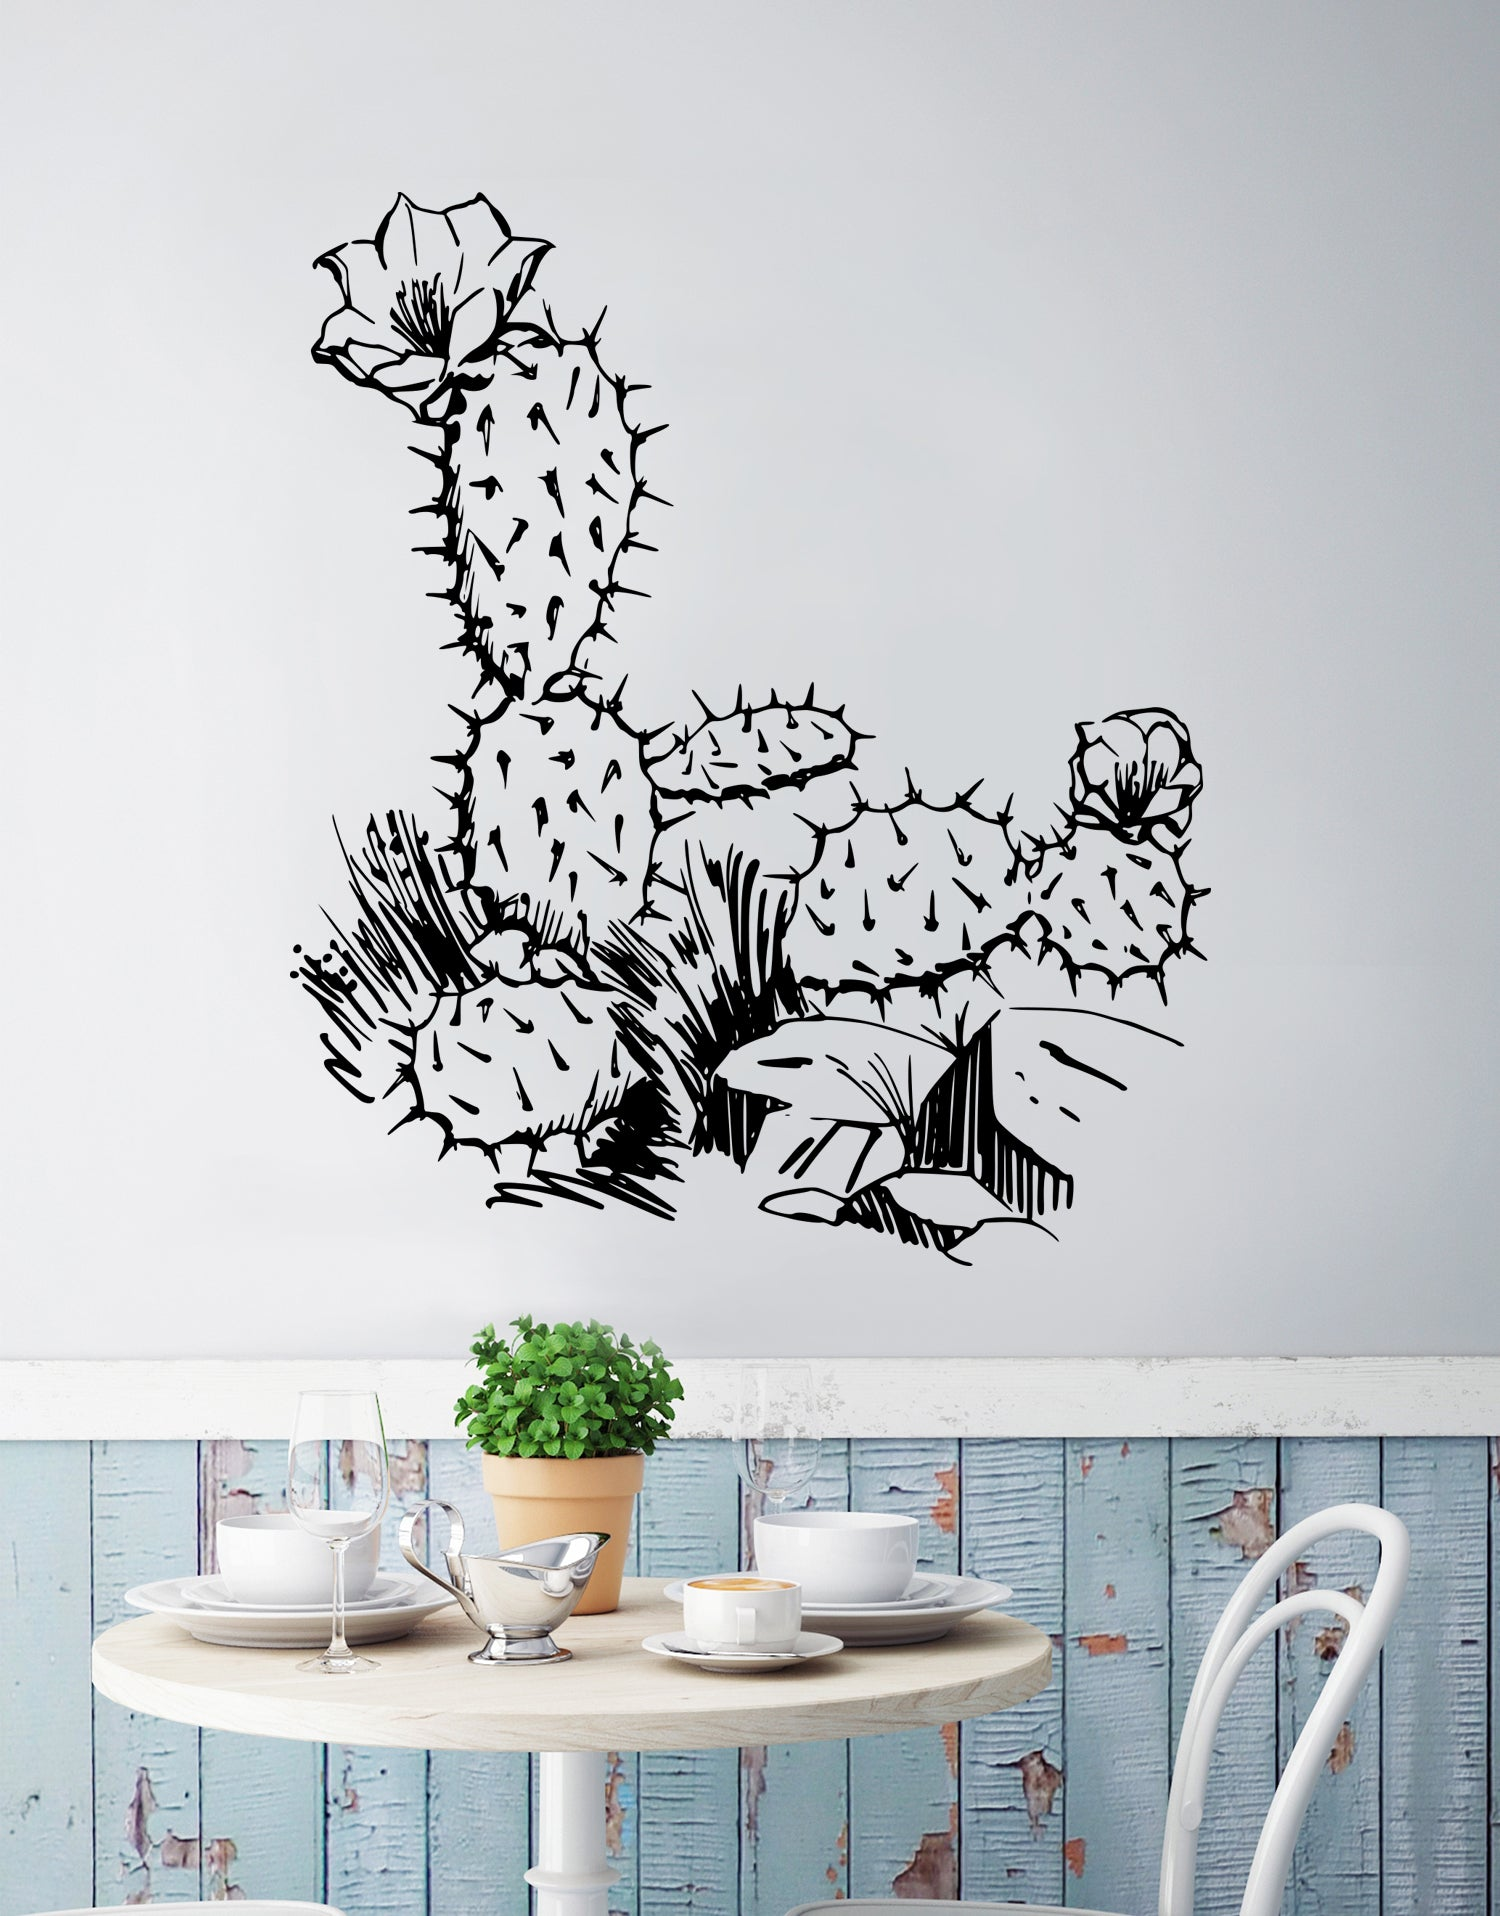 Arizona Desert Cactus Wall Decal. #236